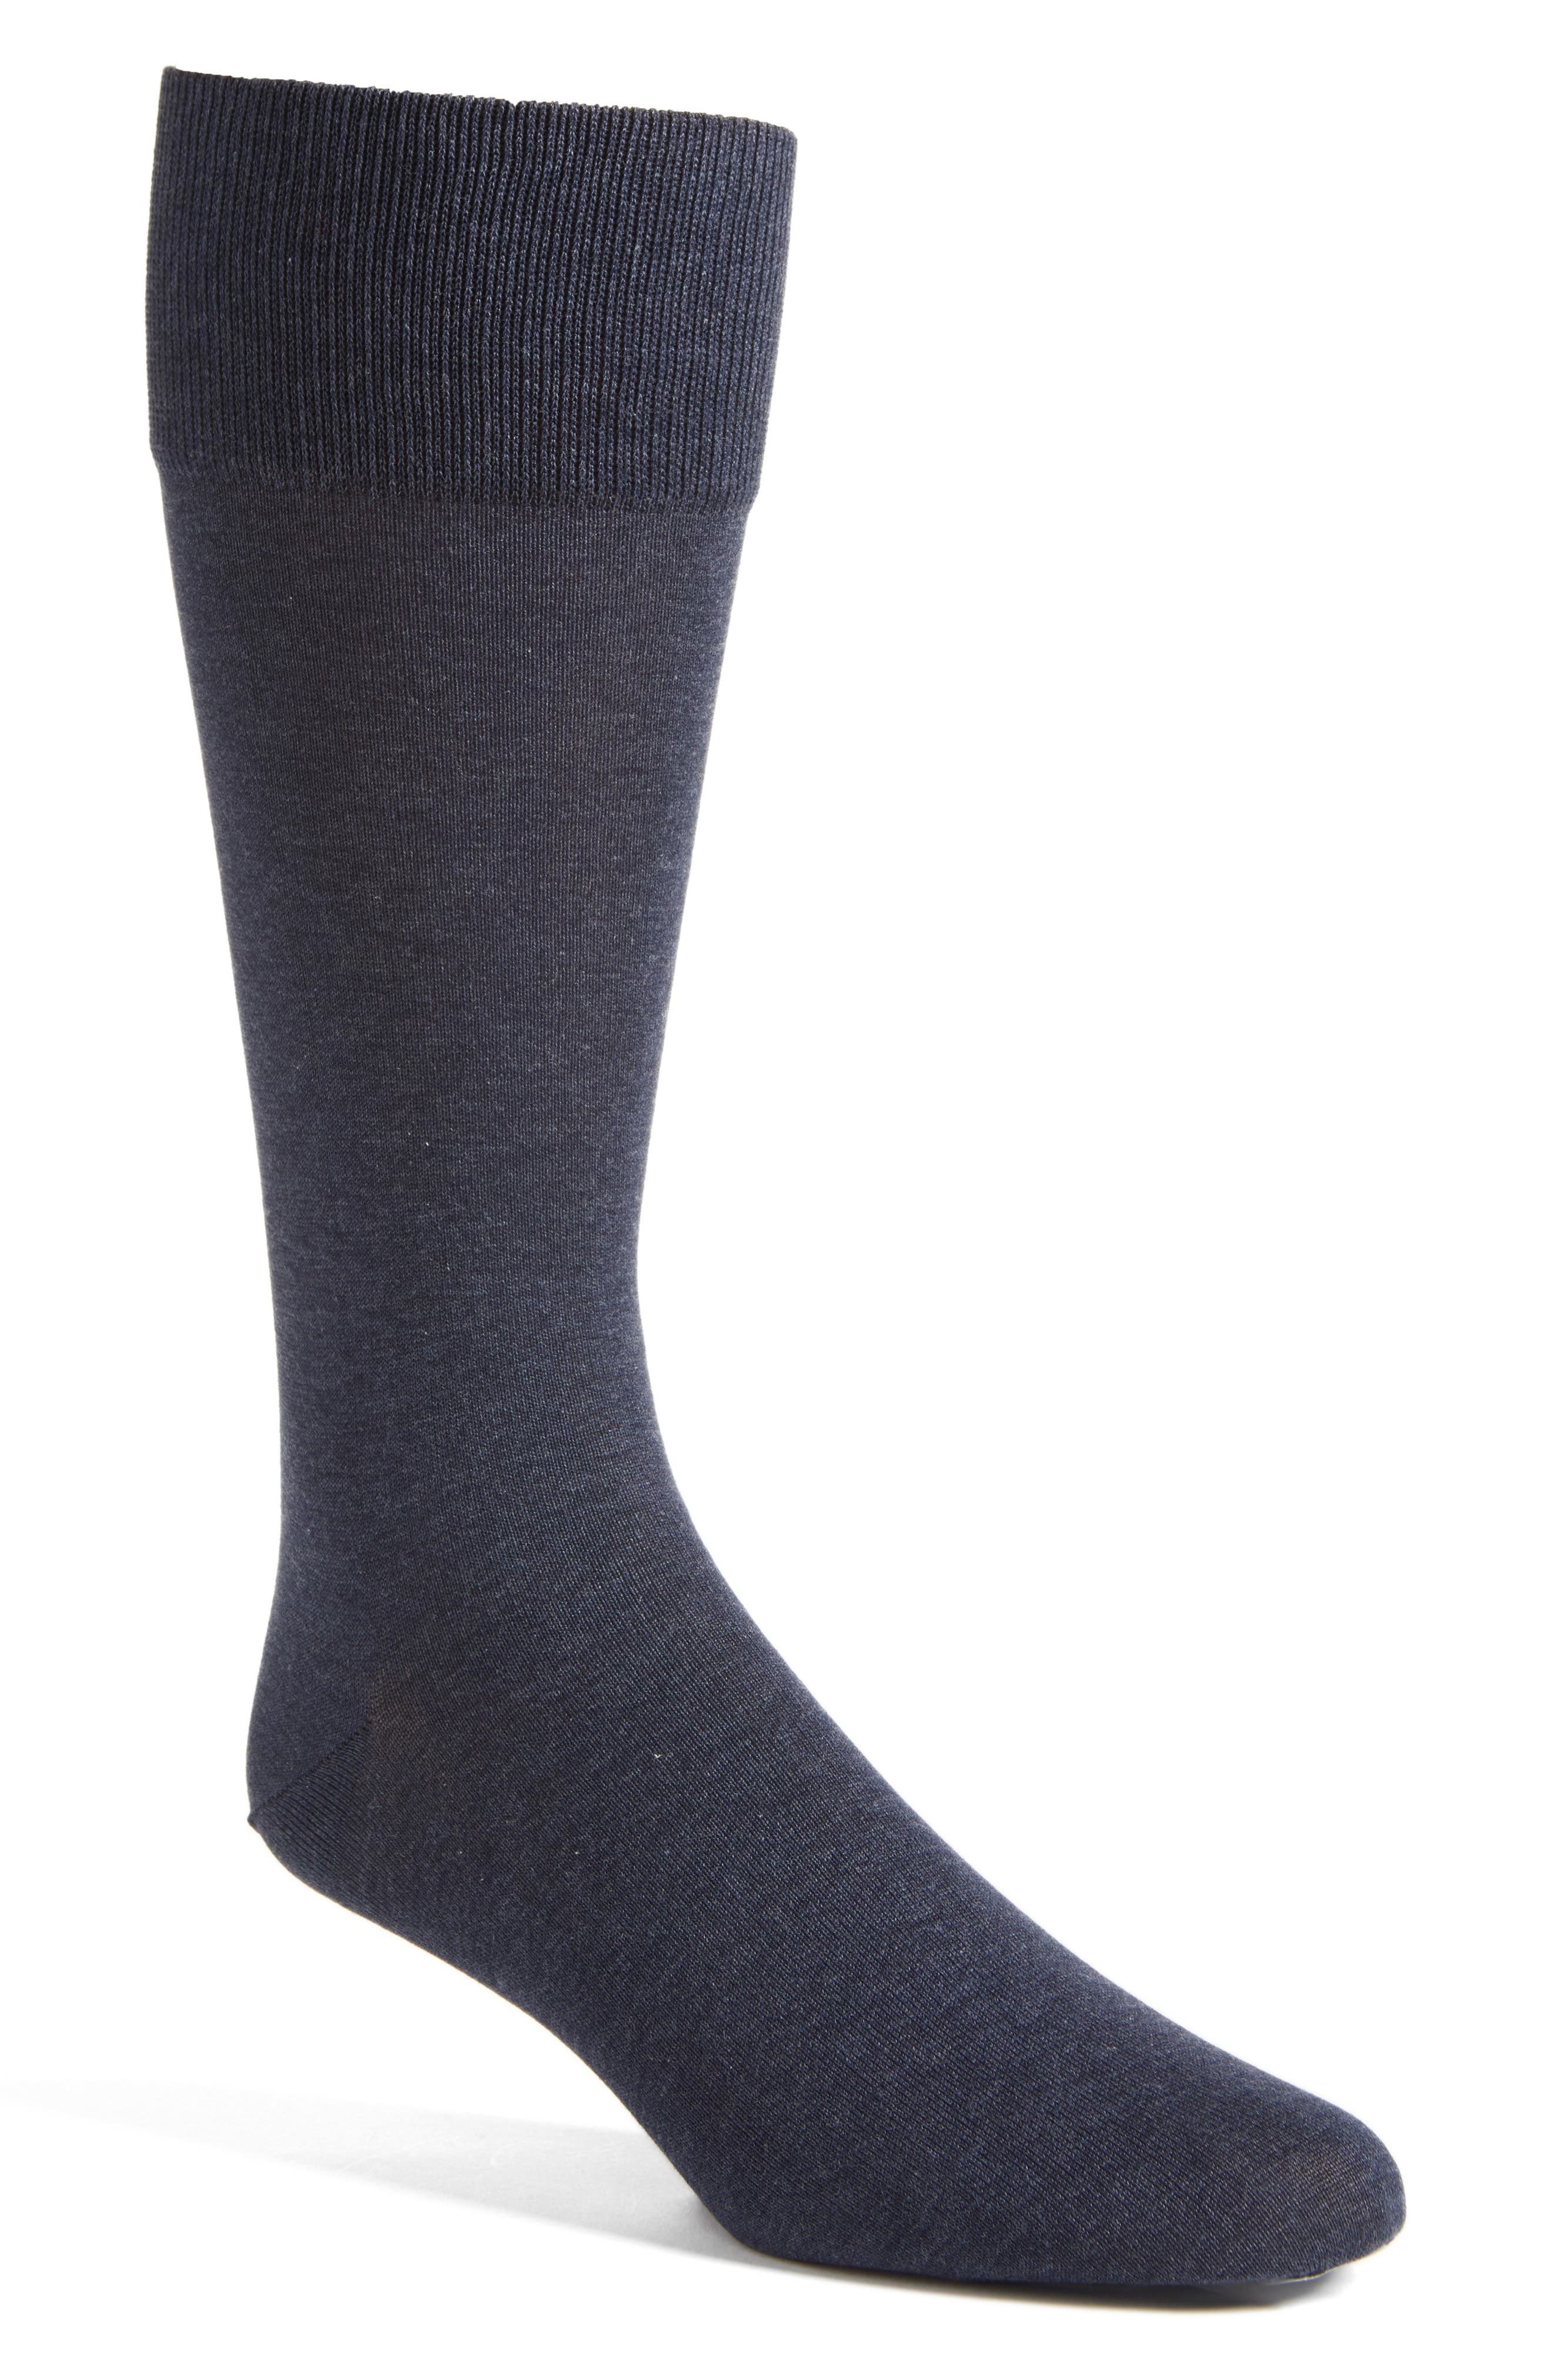 Solid Socks,                         Main,                         color, CHARCOAL HEATHER